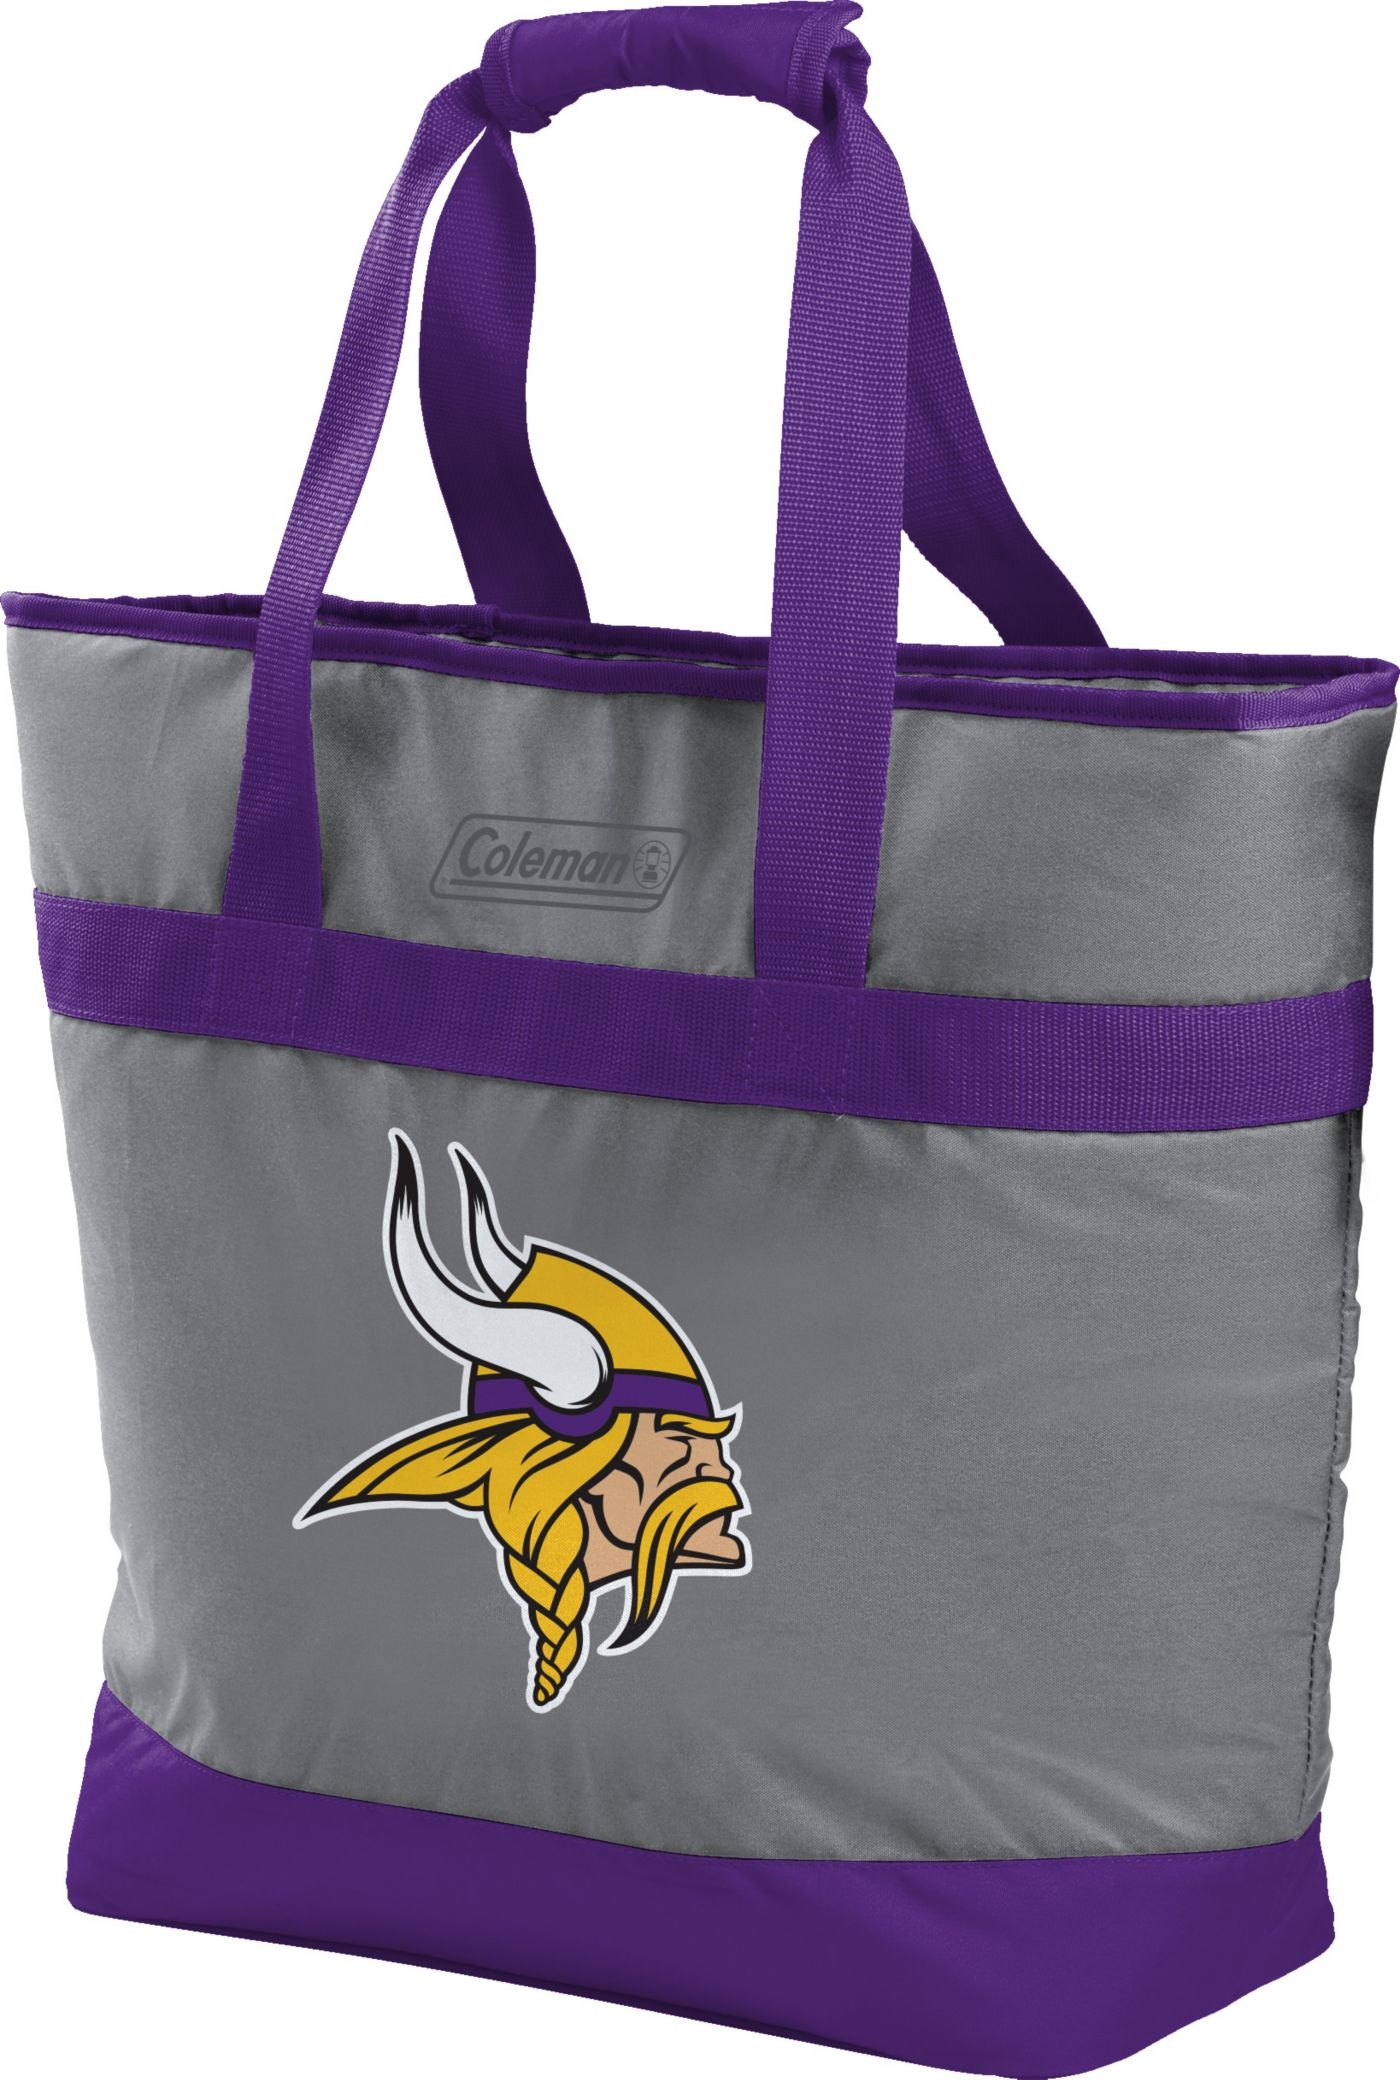 Rawlings Minnesota Vikings Large Tote Cooler